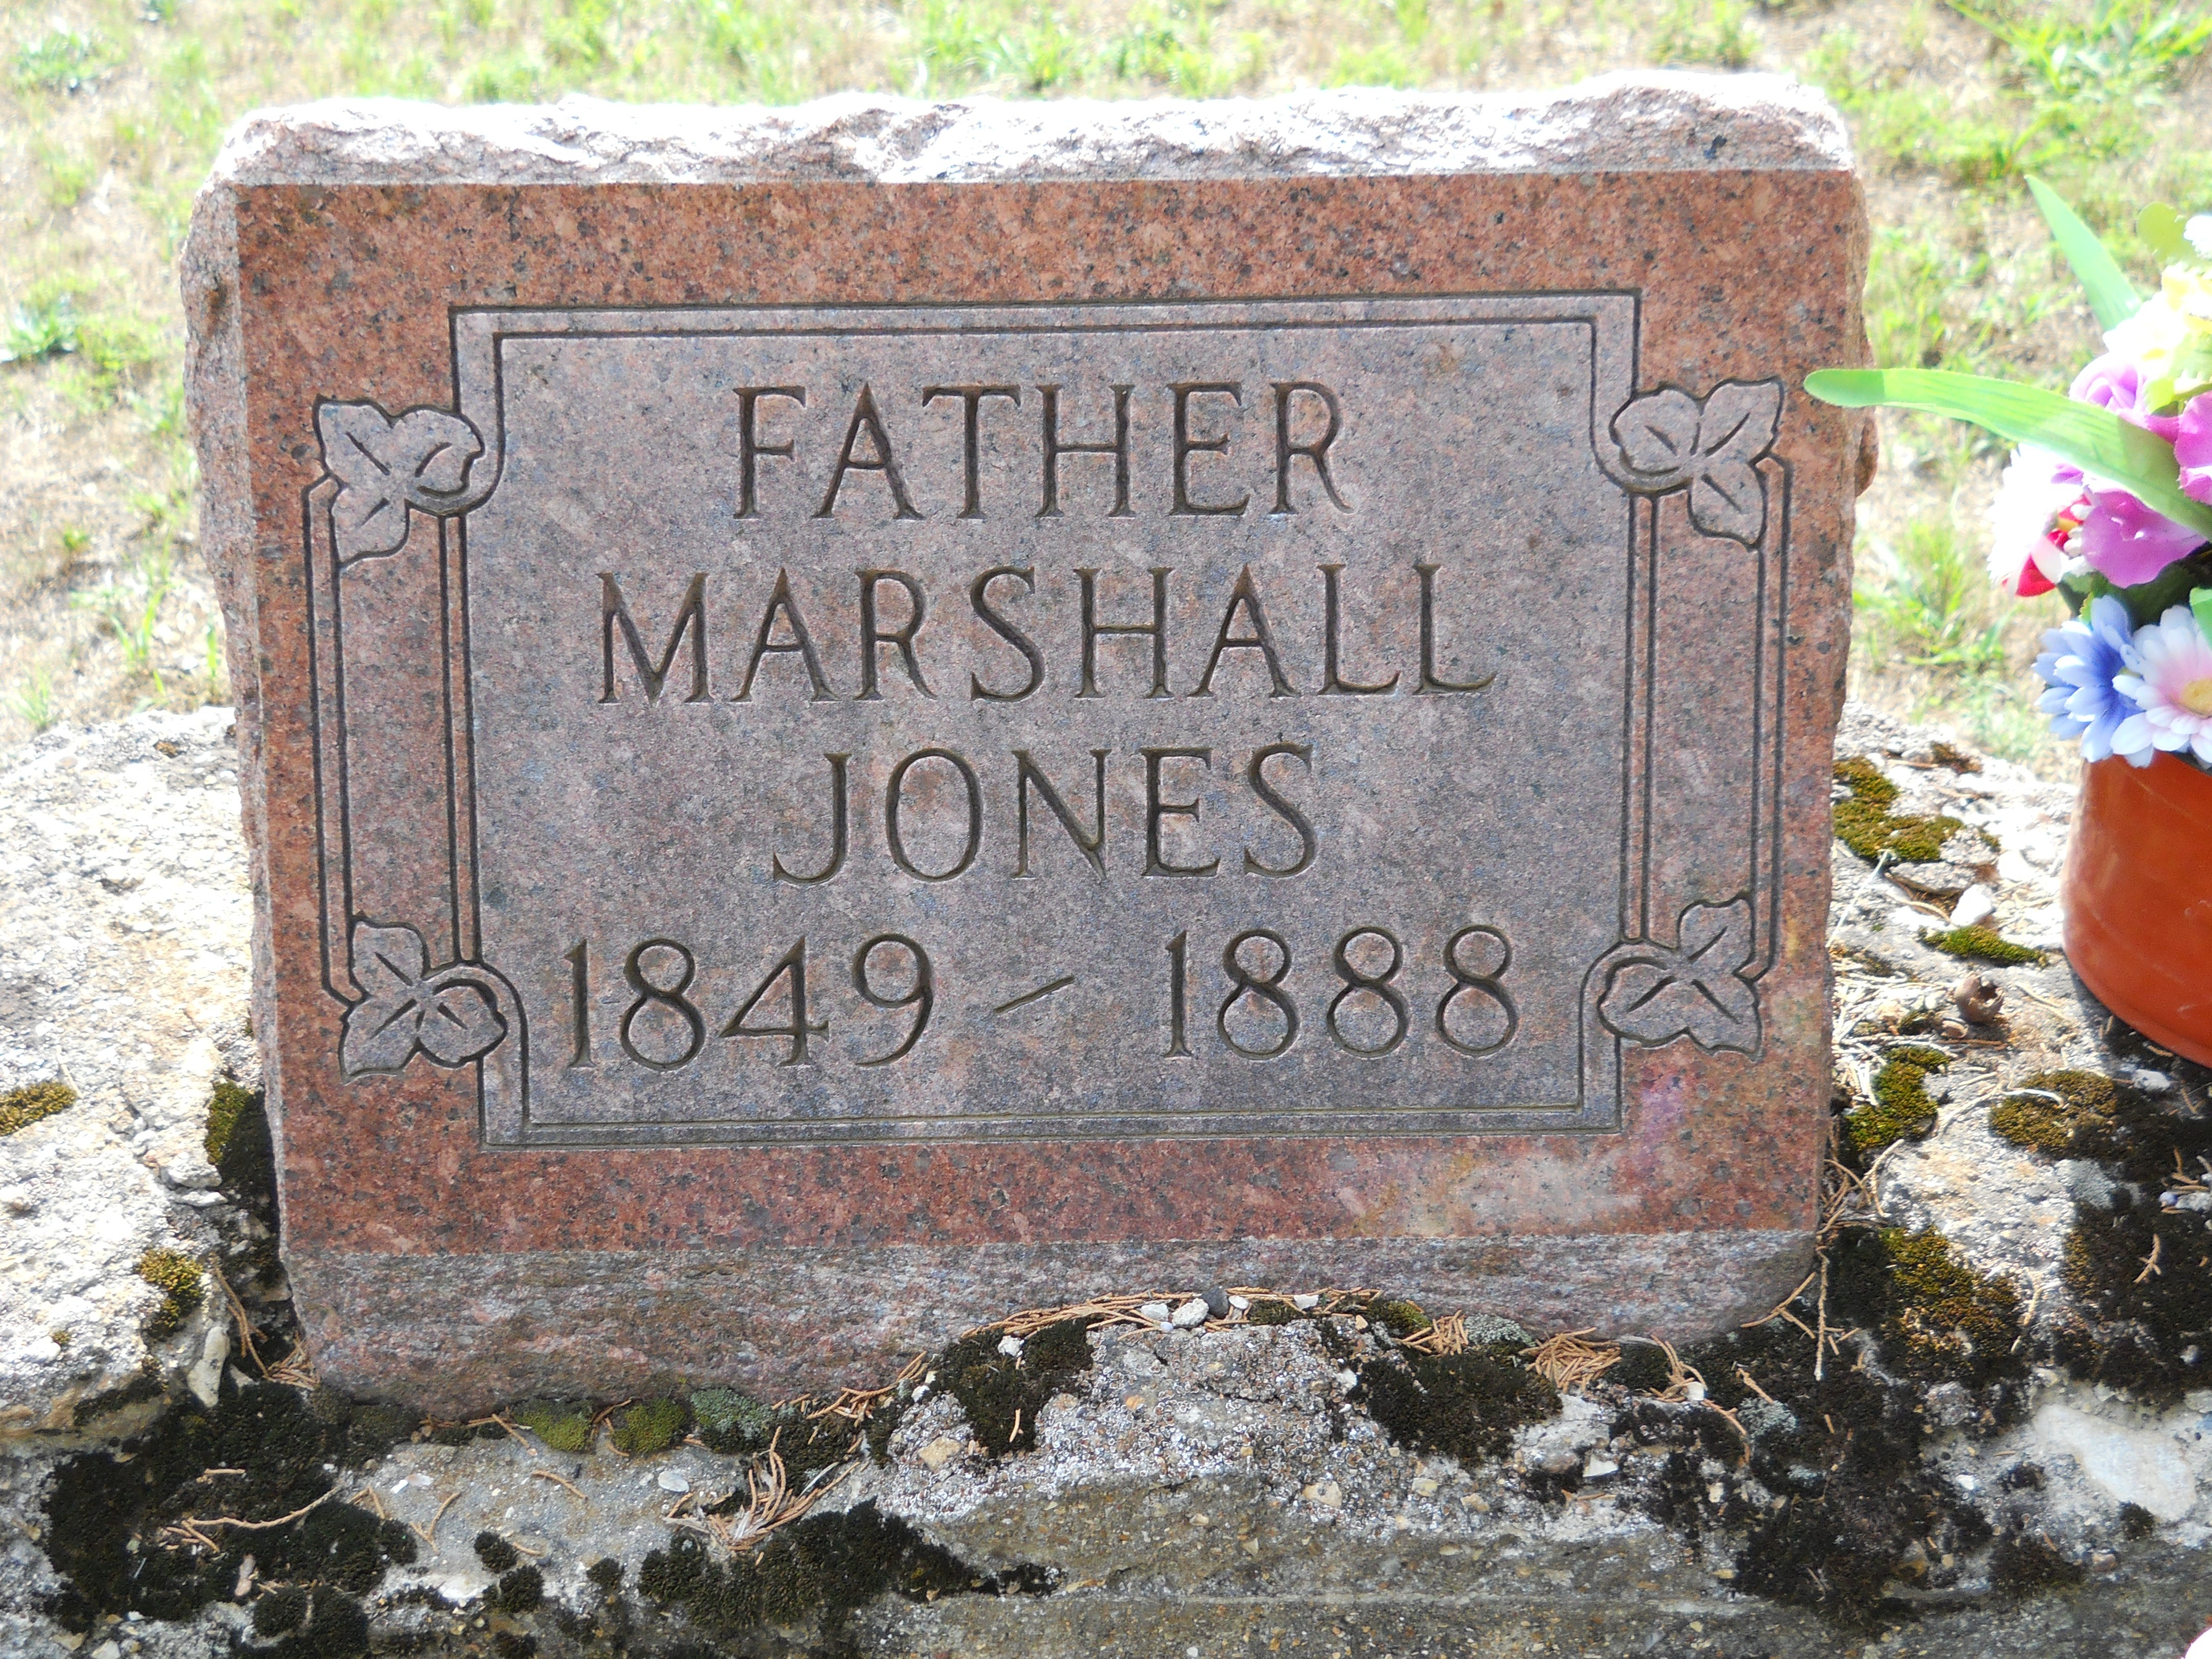 William Marshall Jones